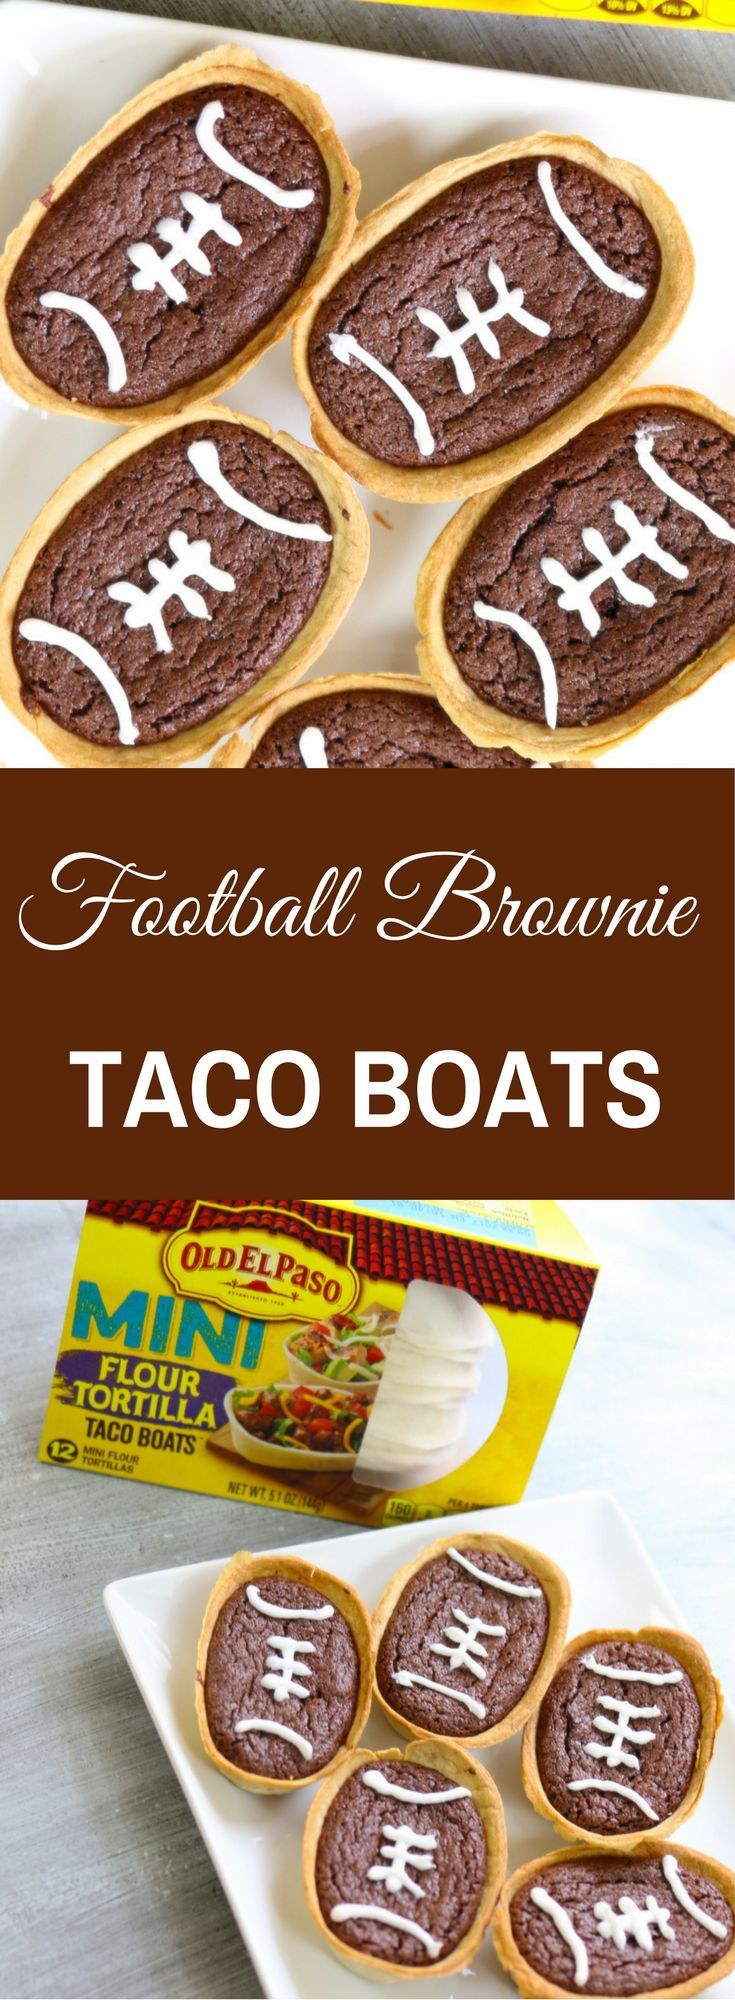 Football season is heating up with the Big Game less than a month away! At TipBuzz we love tailgating and are always looking to create new recipes… so we came up with these fun Football Brownie Taco Boats using Old El Paso Mini Soft Taco Boats #OEPBigGame @Walmart #sp